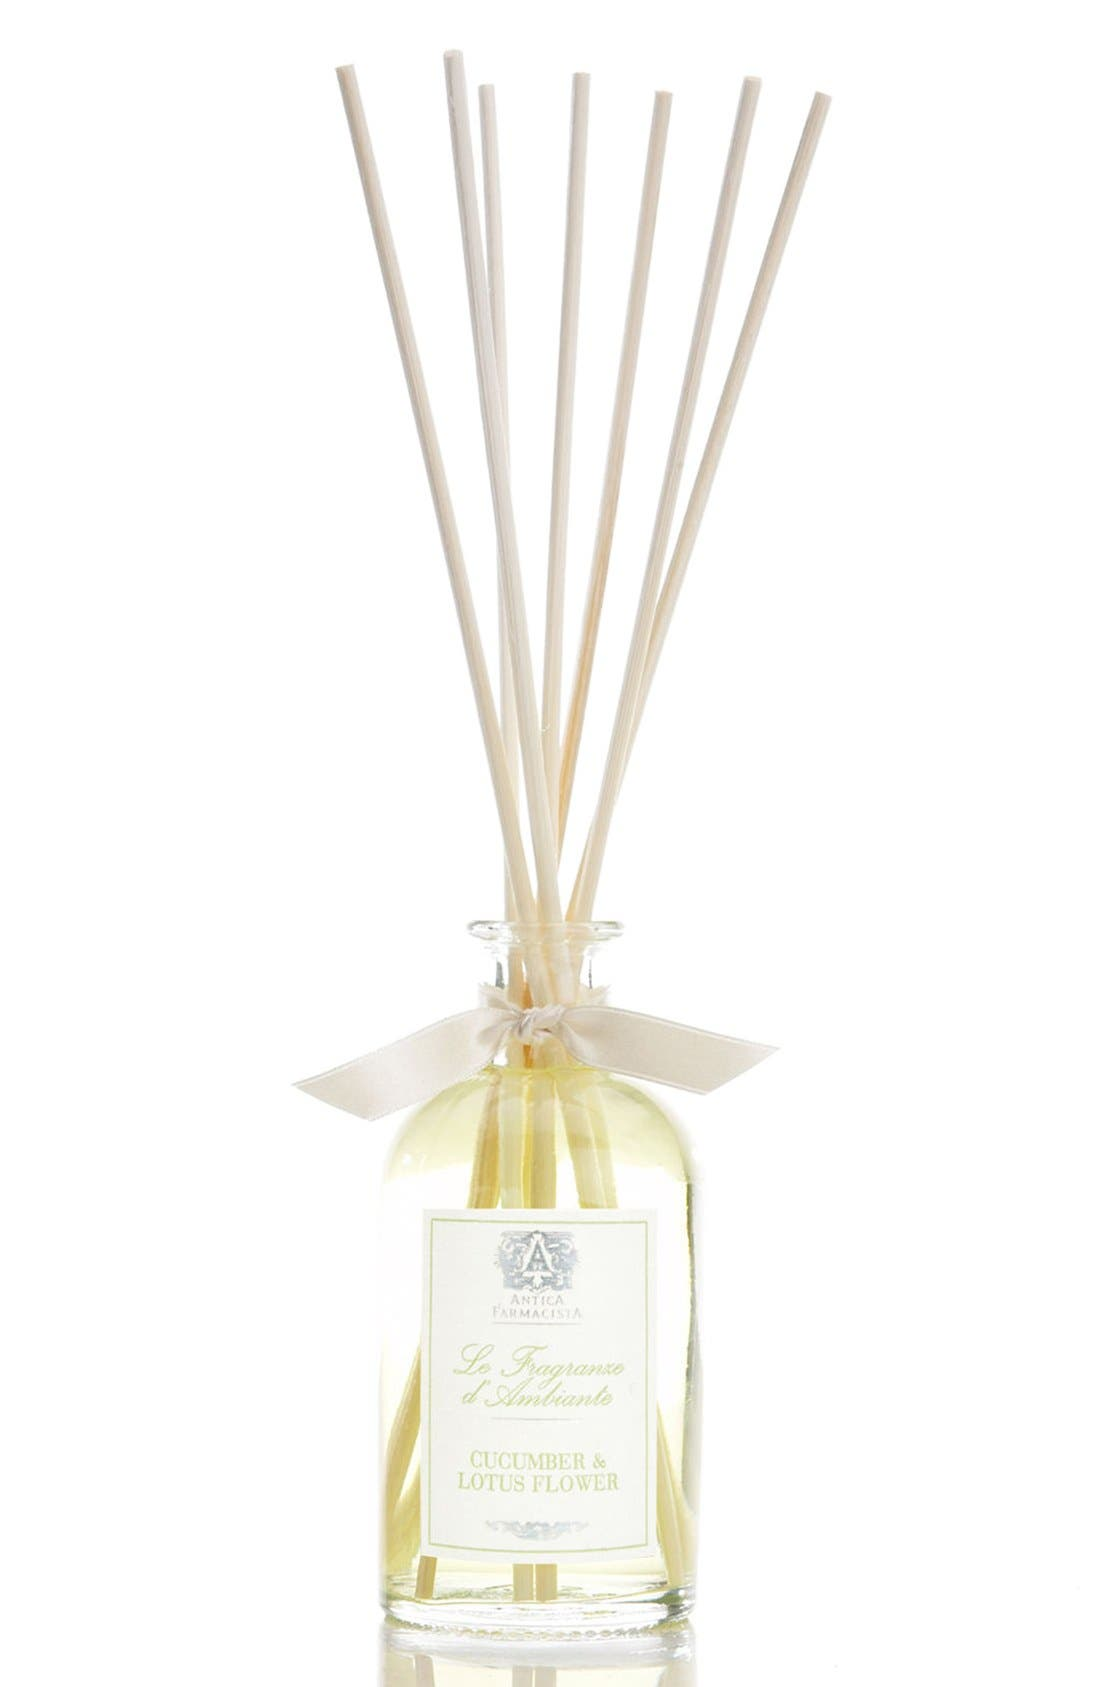 Antica Farmacista 'Cucumber & Lotus Flower' Home Ambiance Perfume (3.3 oz.)